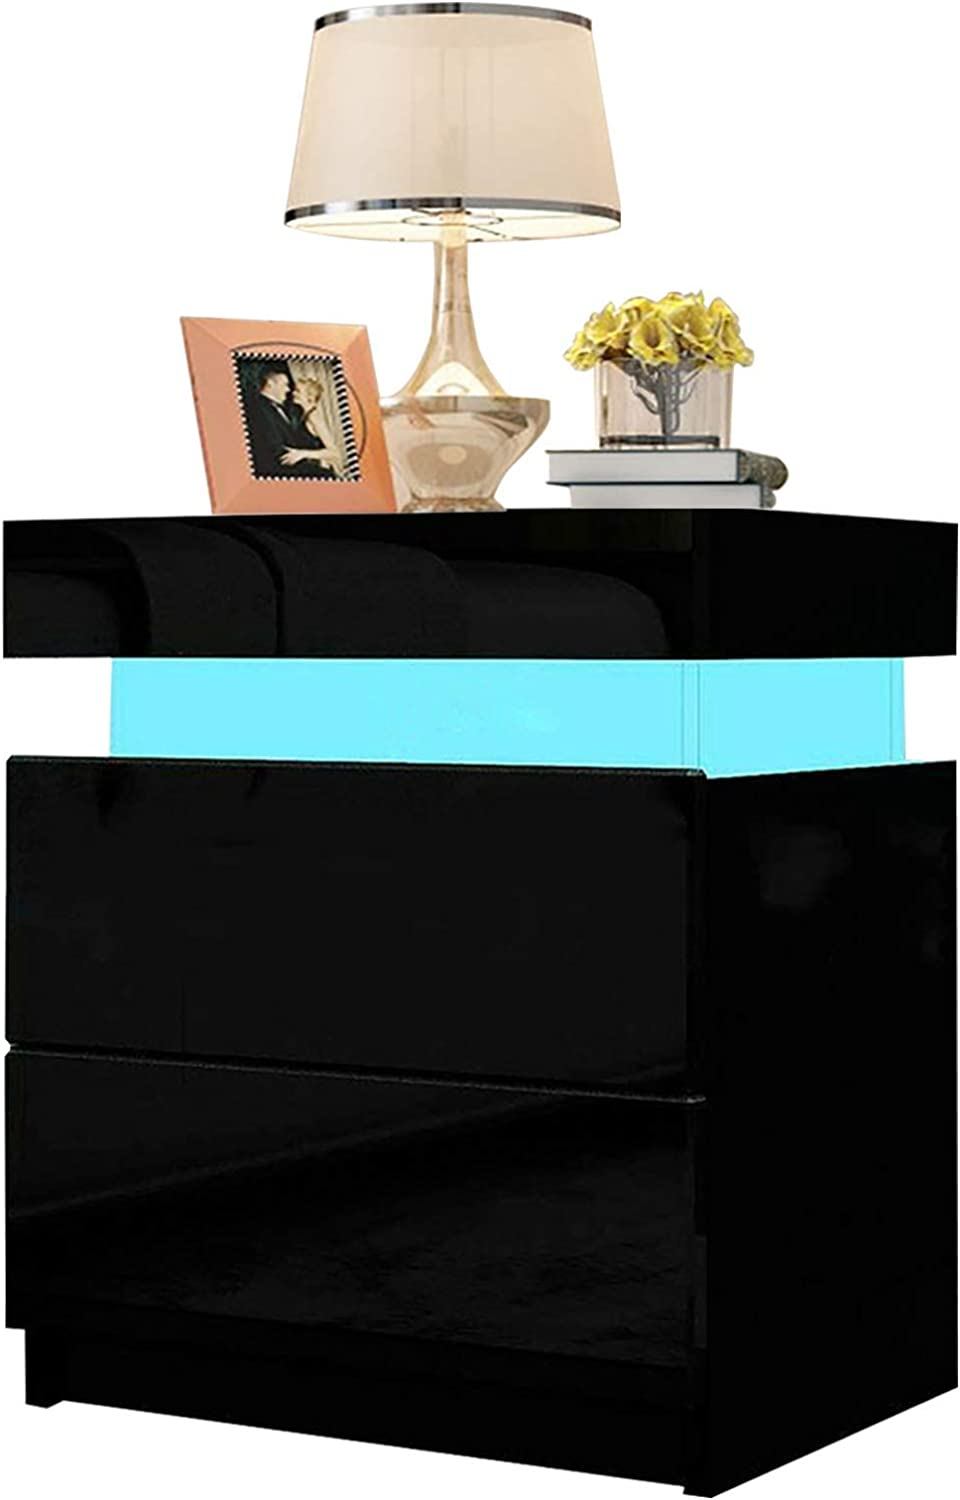 Dripex Bedside Table High Gloss Front 2 Drawers Nightstand cabinet with LED Lights for bedroom (Black, 45 x 35 x 52cm)